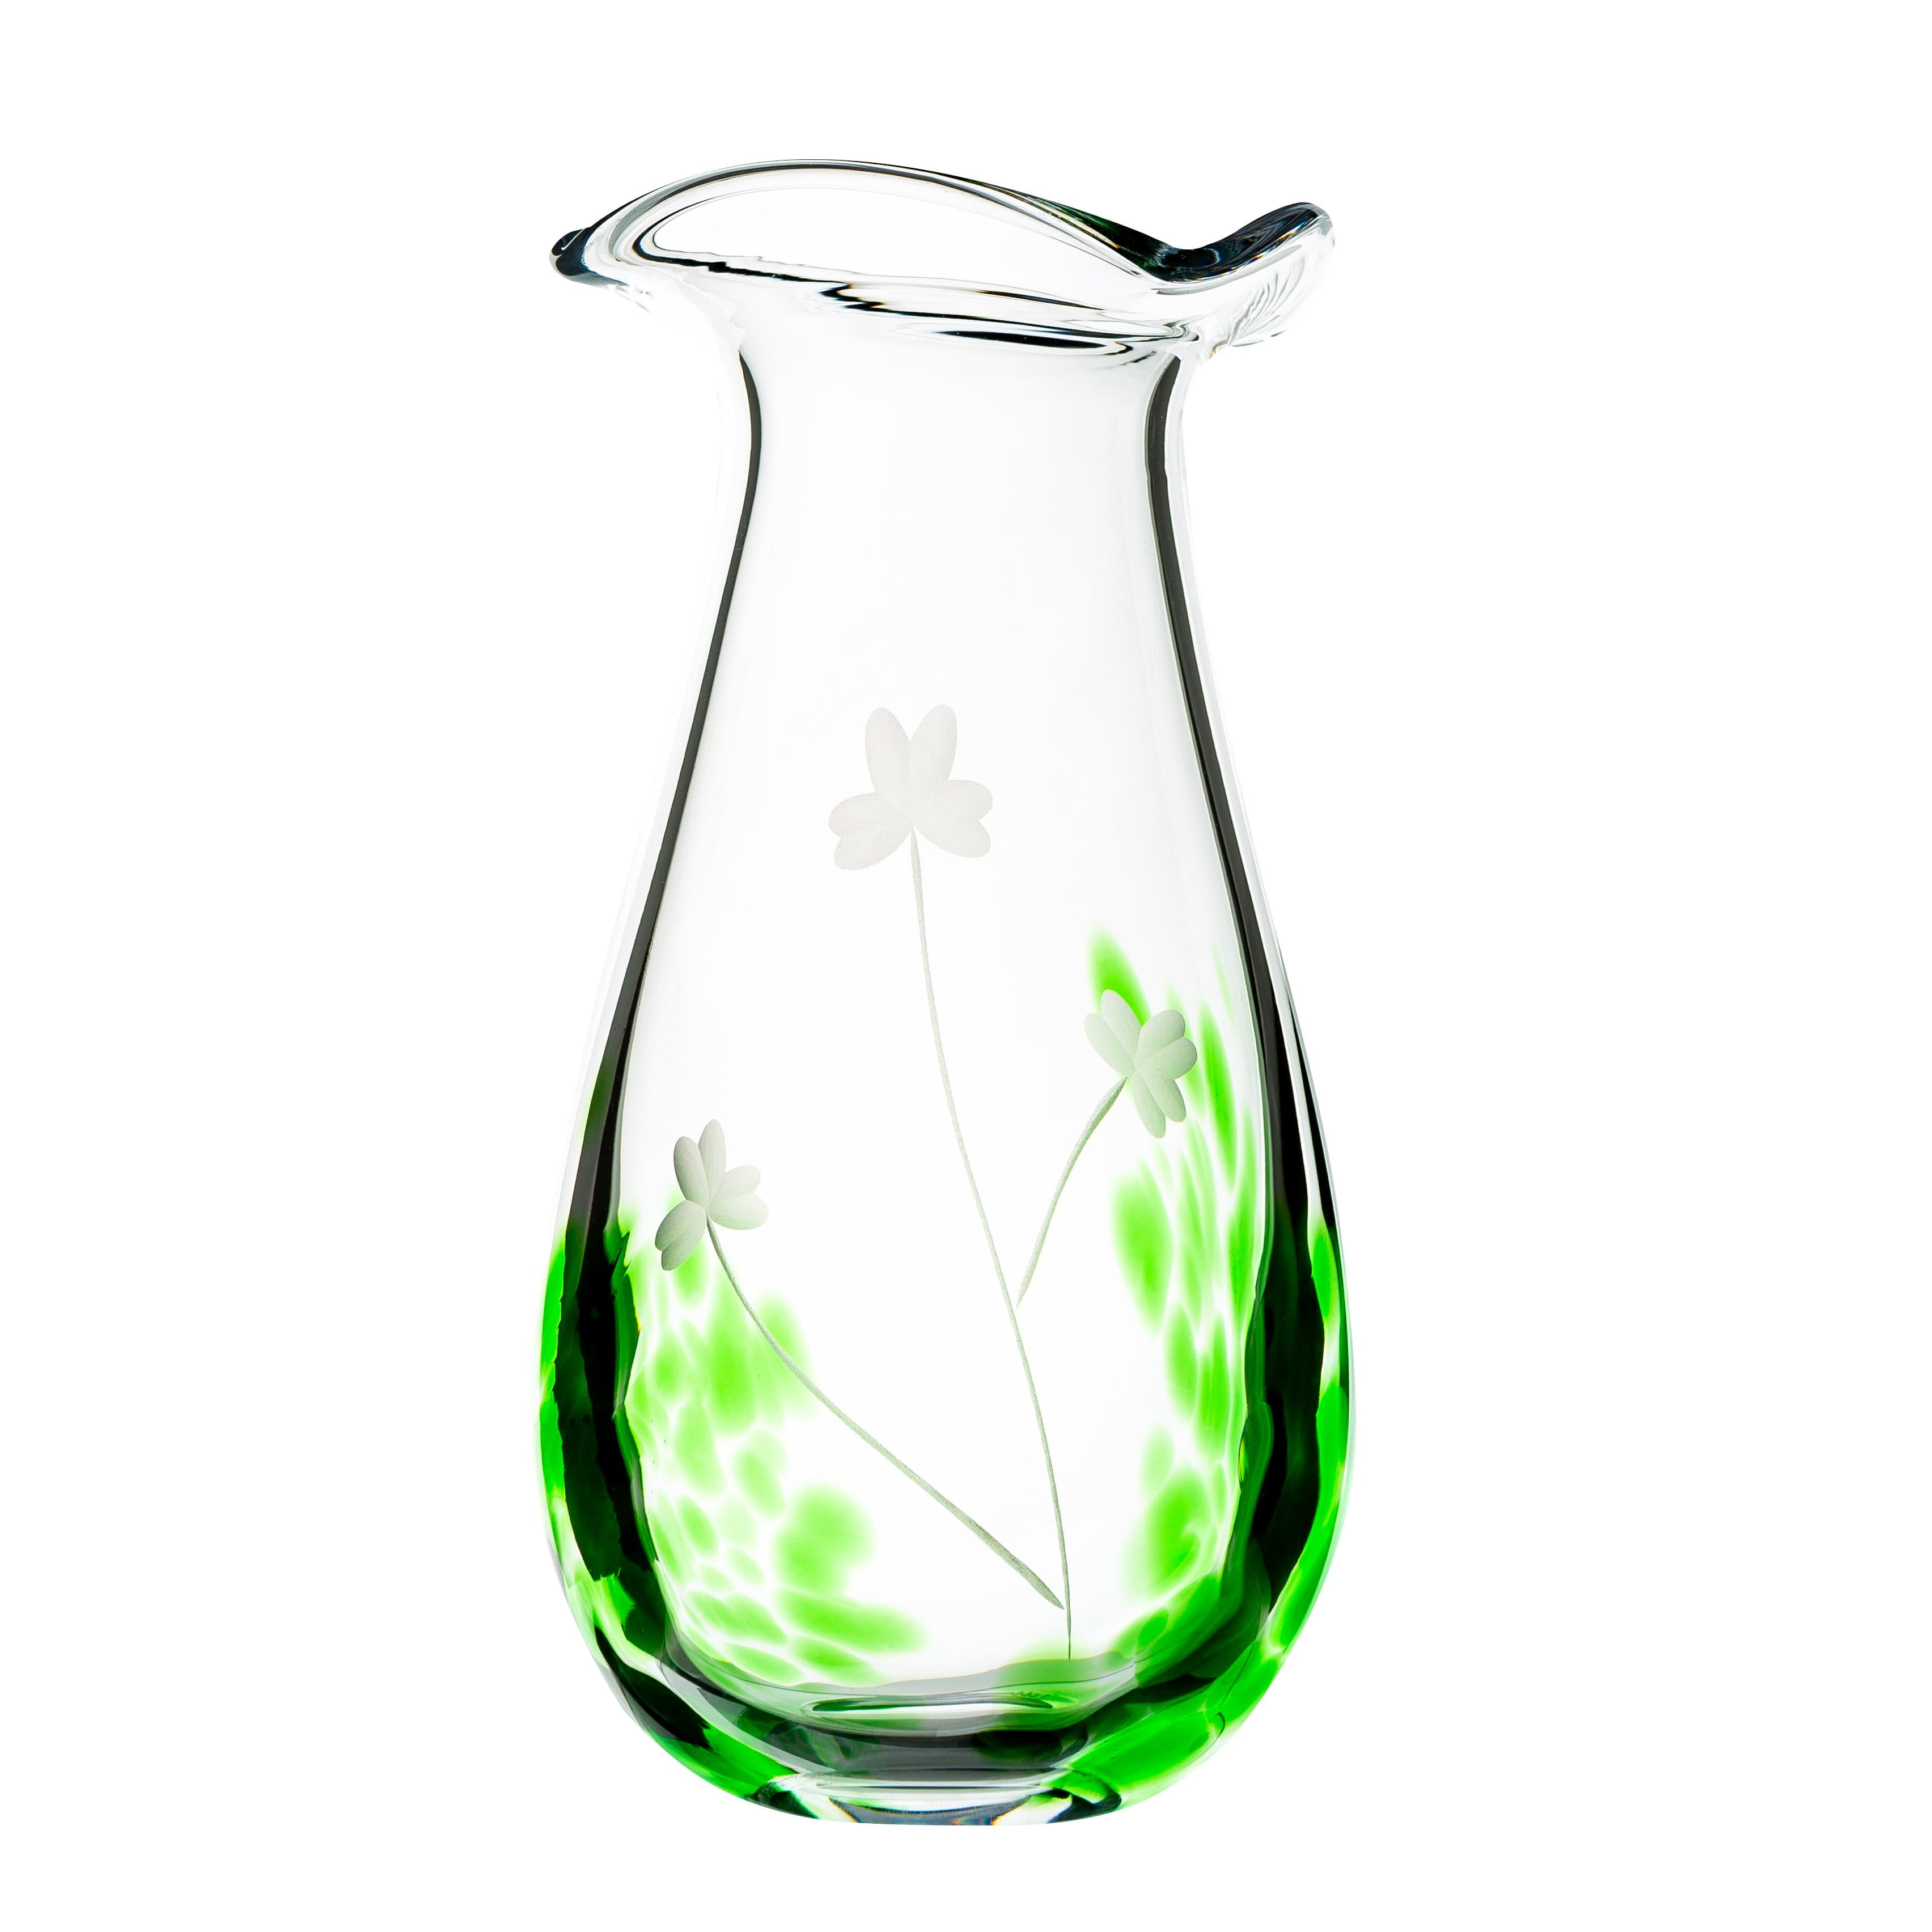 "Shamrock Glassware Large Vase 10"" Tall Irish Gift Handcrafted in Co. Waterford Ireland by Maker-Partner Irish Handmade Glass Company"